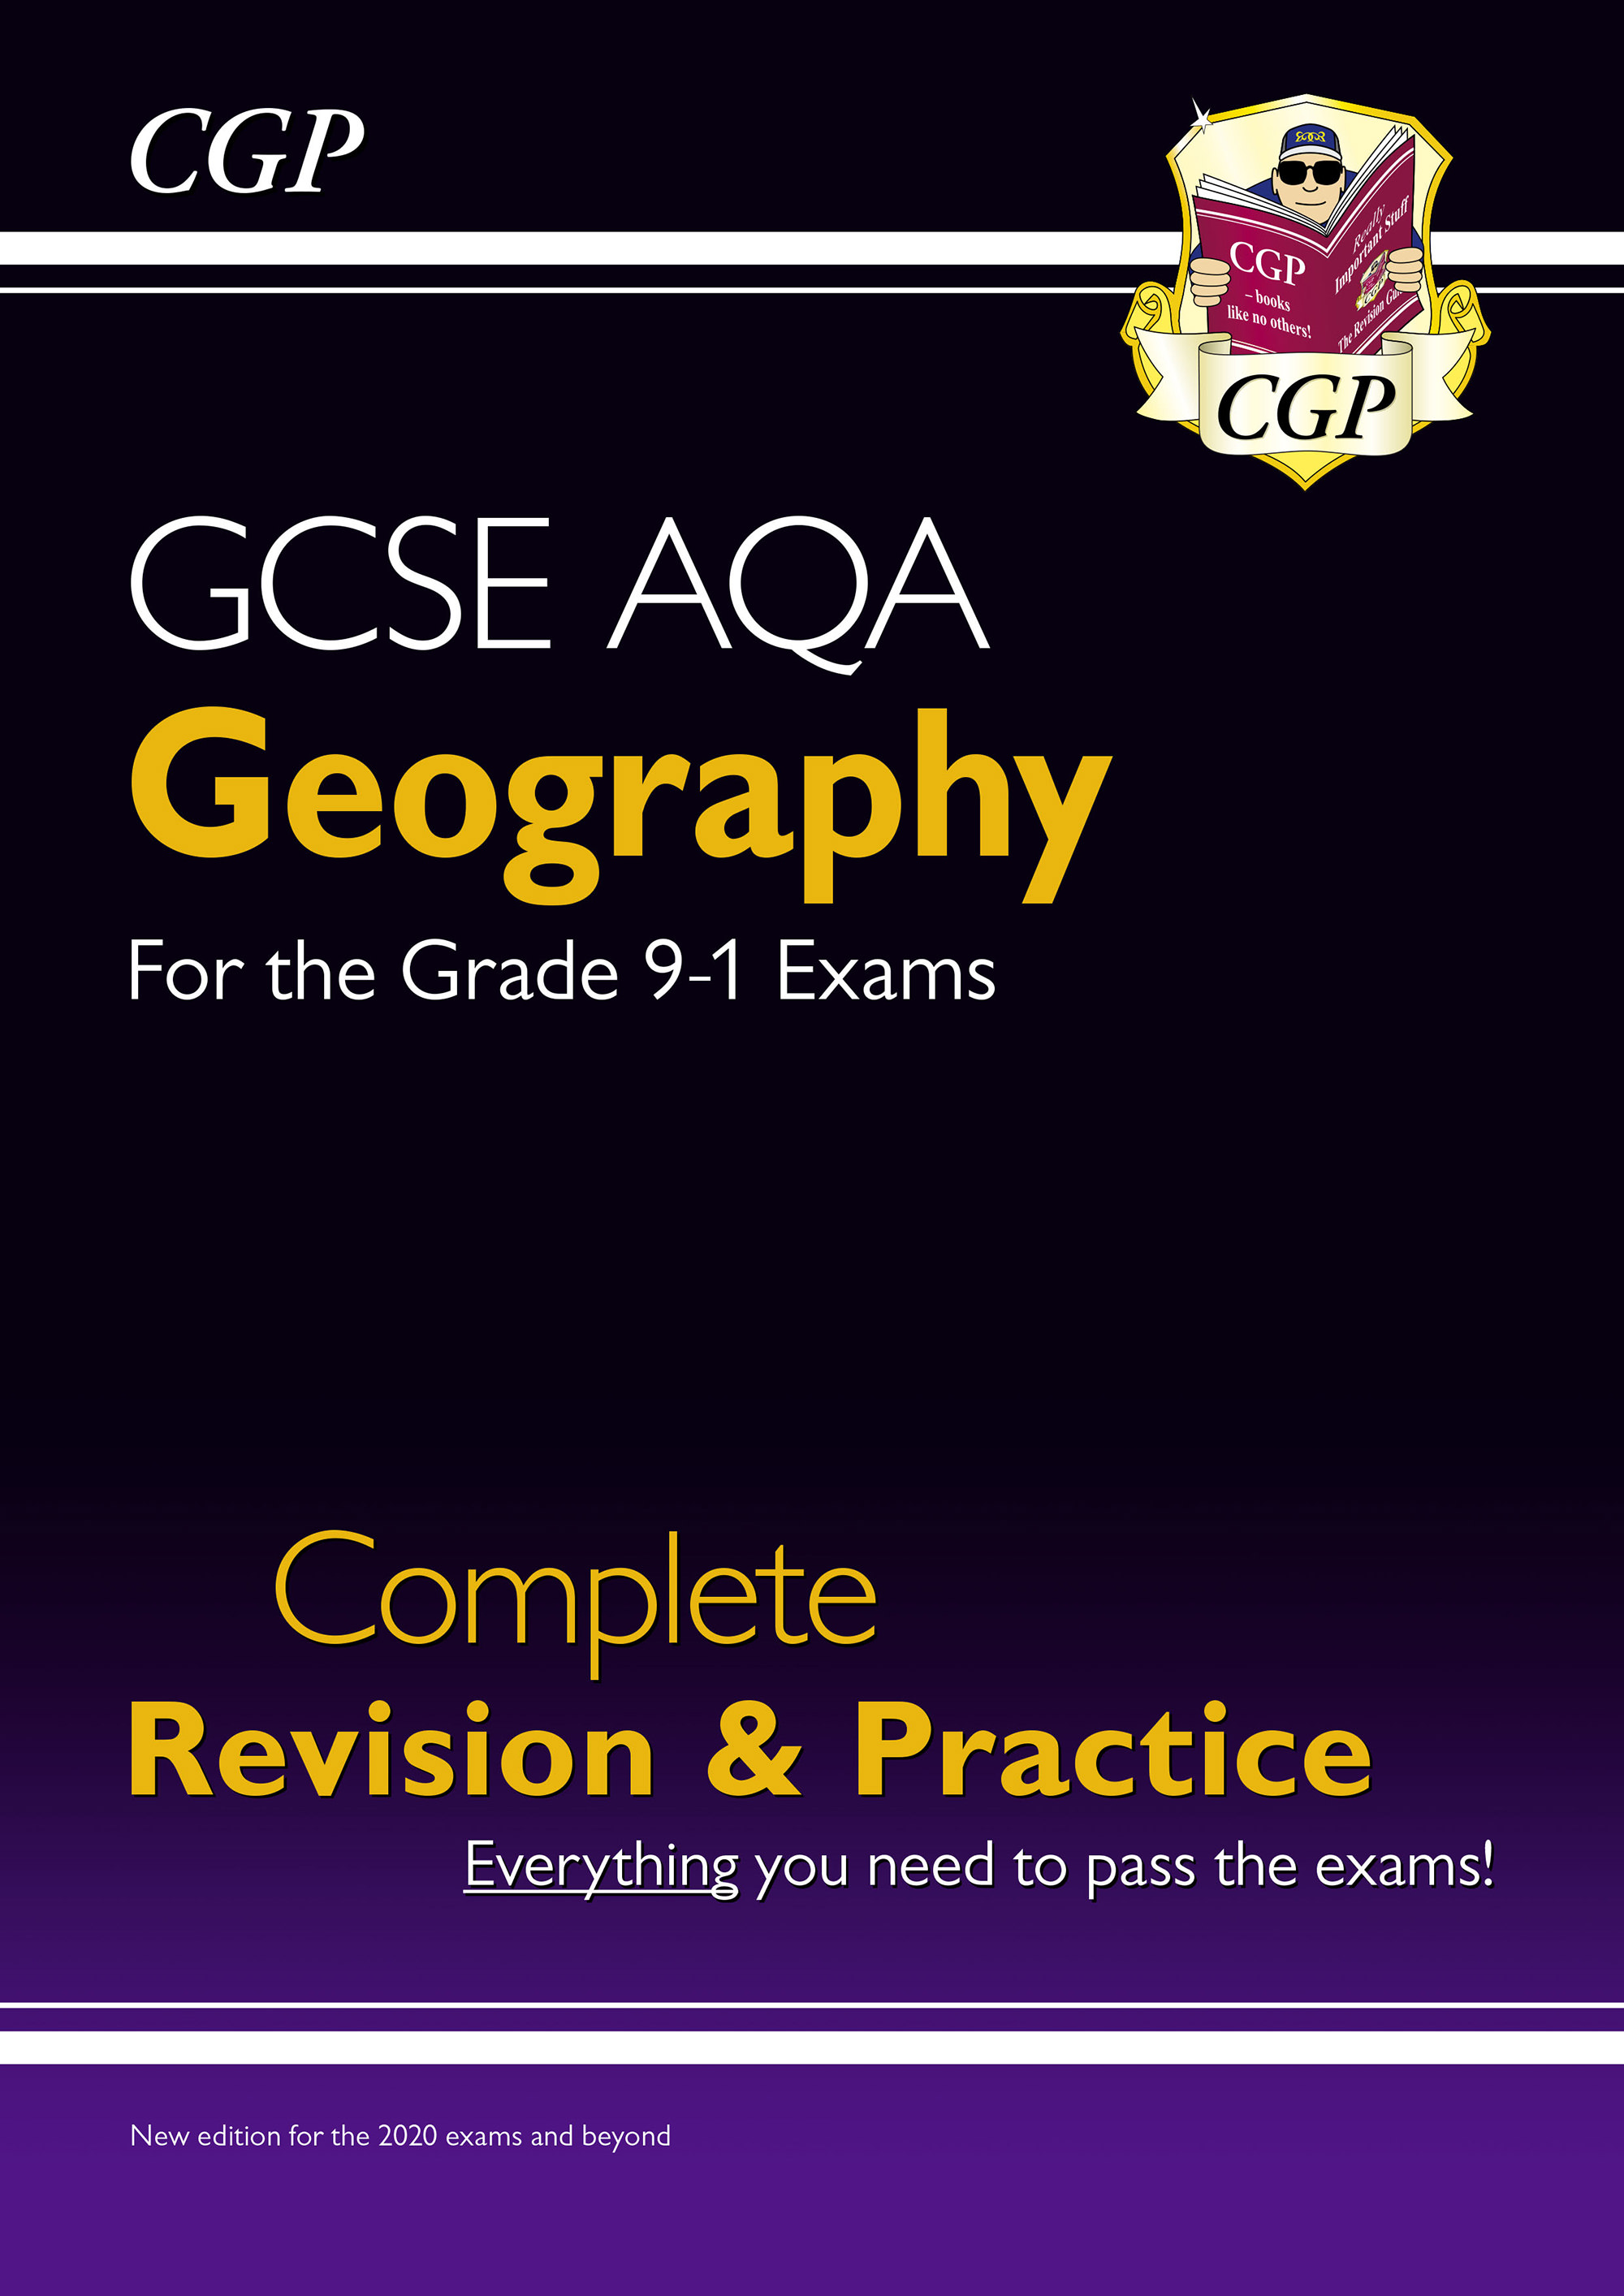 GAS42D - New GCSE 9-1 Geography AQA Complete Revision & Practice Online Ed